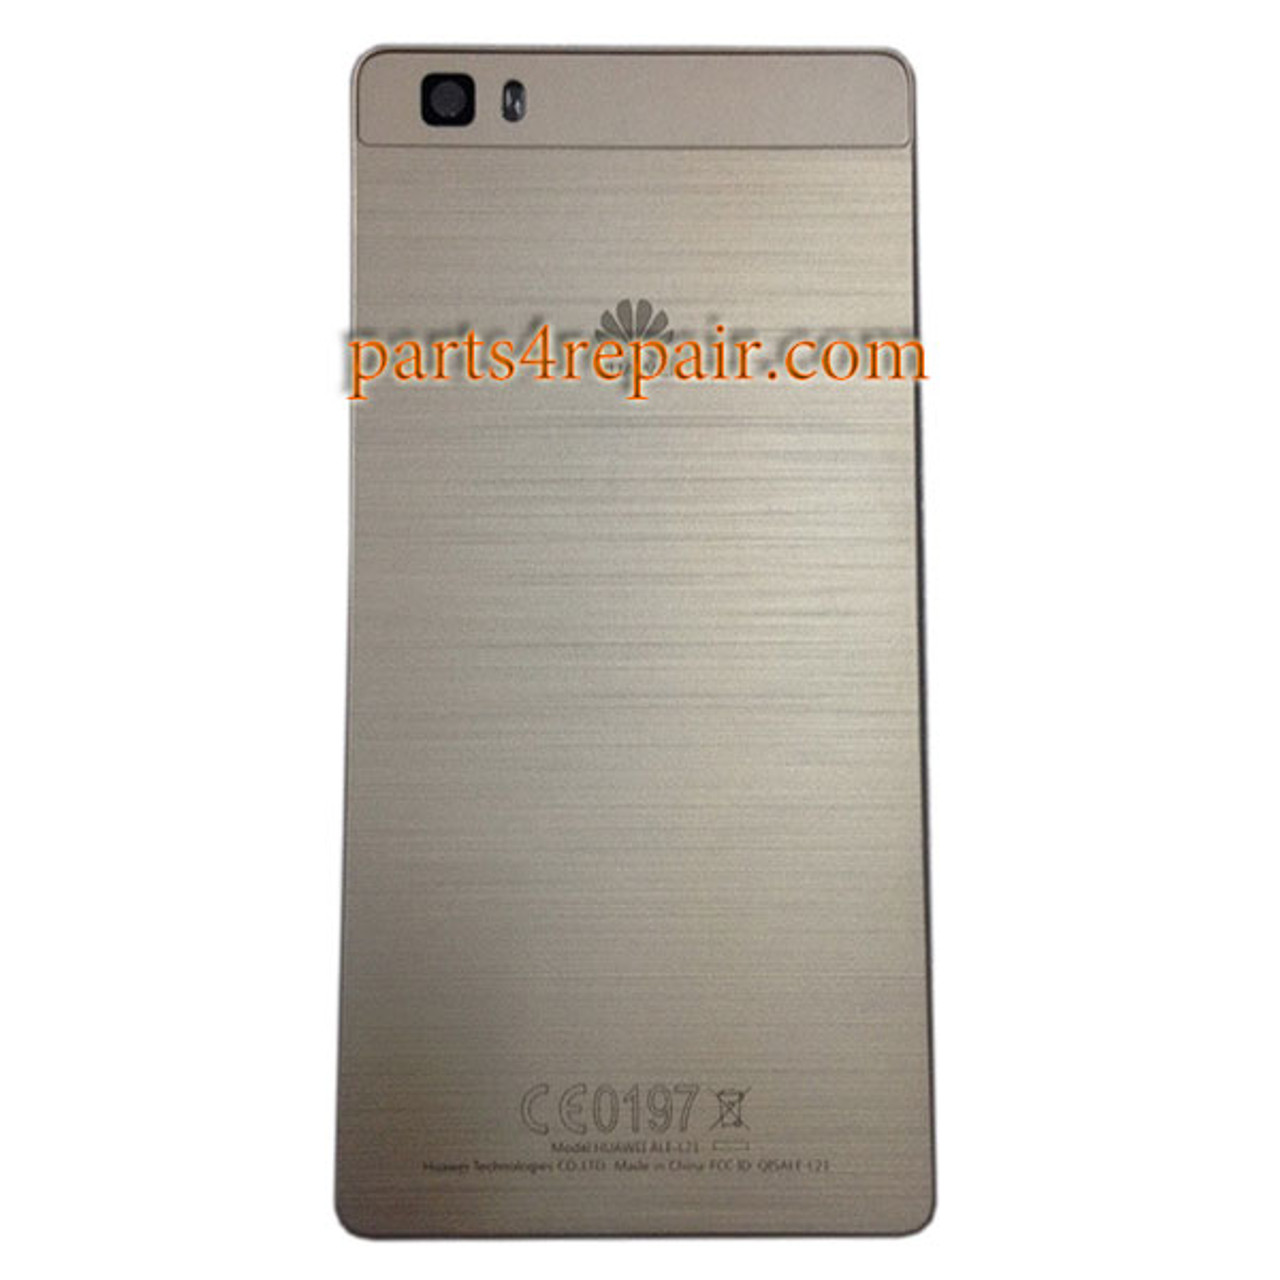 huawei p8 lite gold. back cover for huawei p8 lite gold